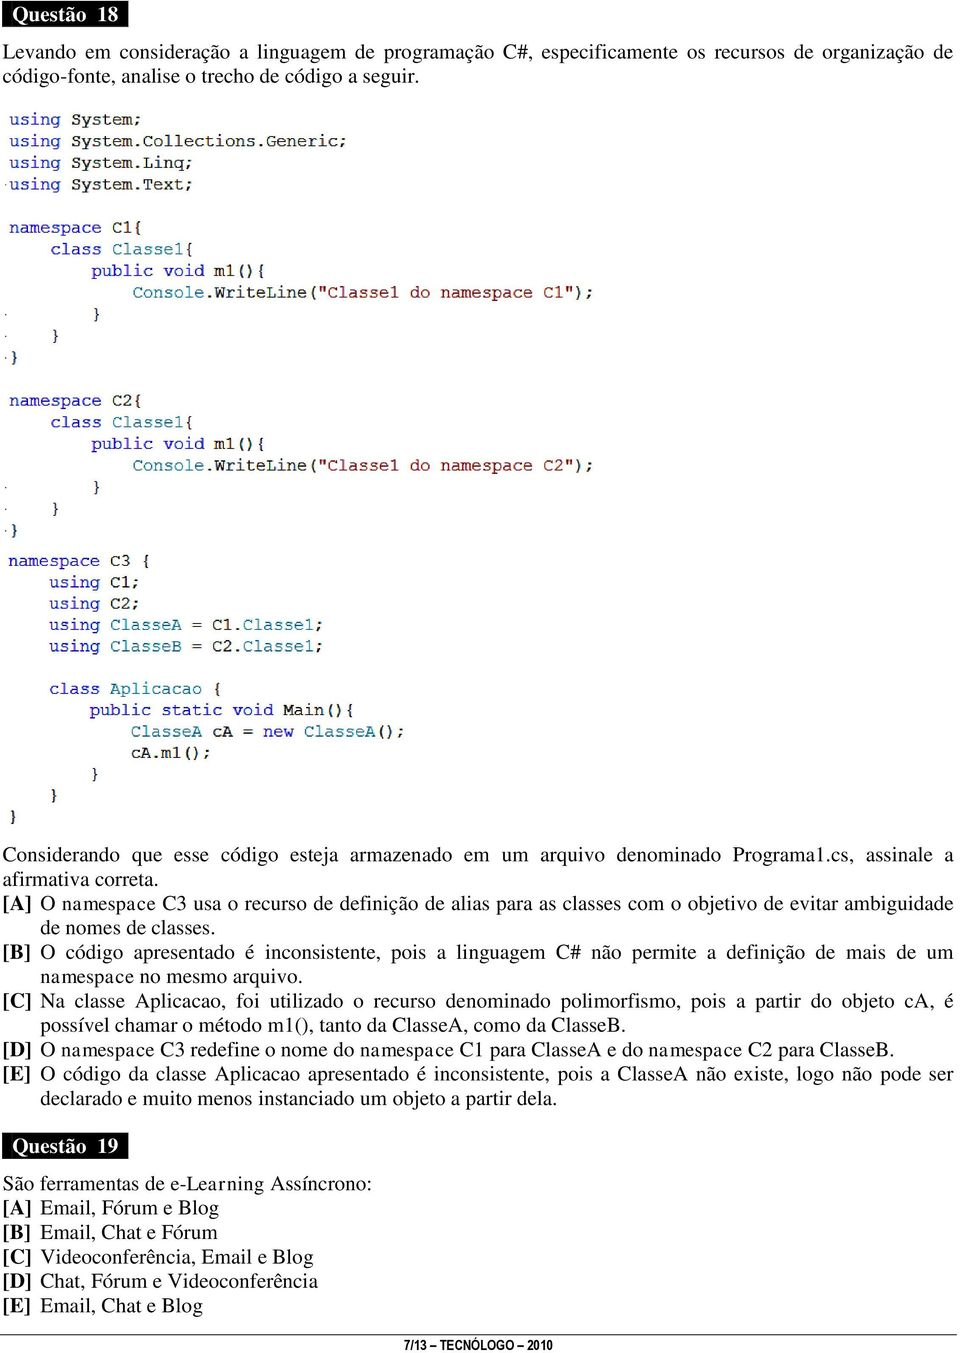 [A] O namespace C3 usa o recurso de definição de alias para as classes com o objetivo de evitar ambiguidade de nomes de classes.